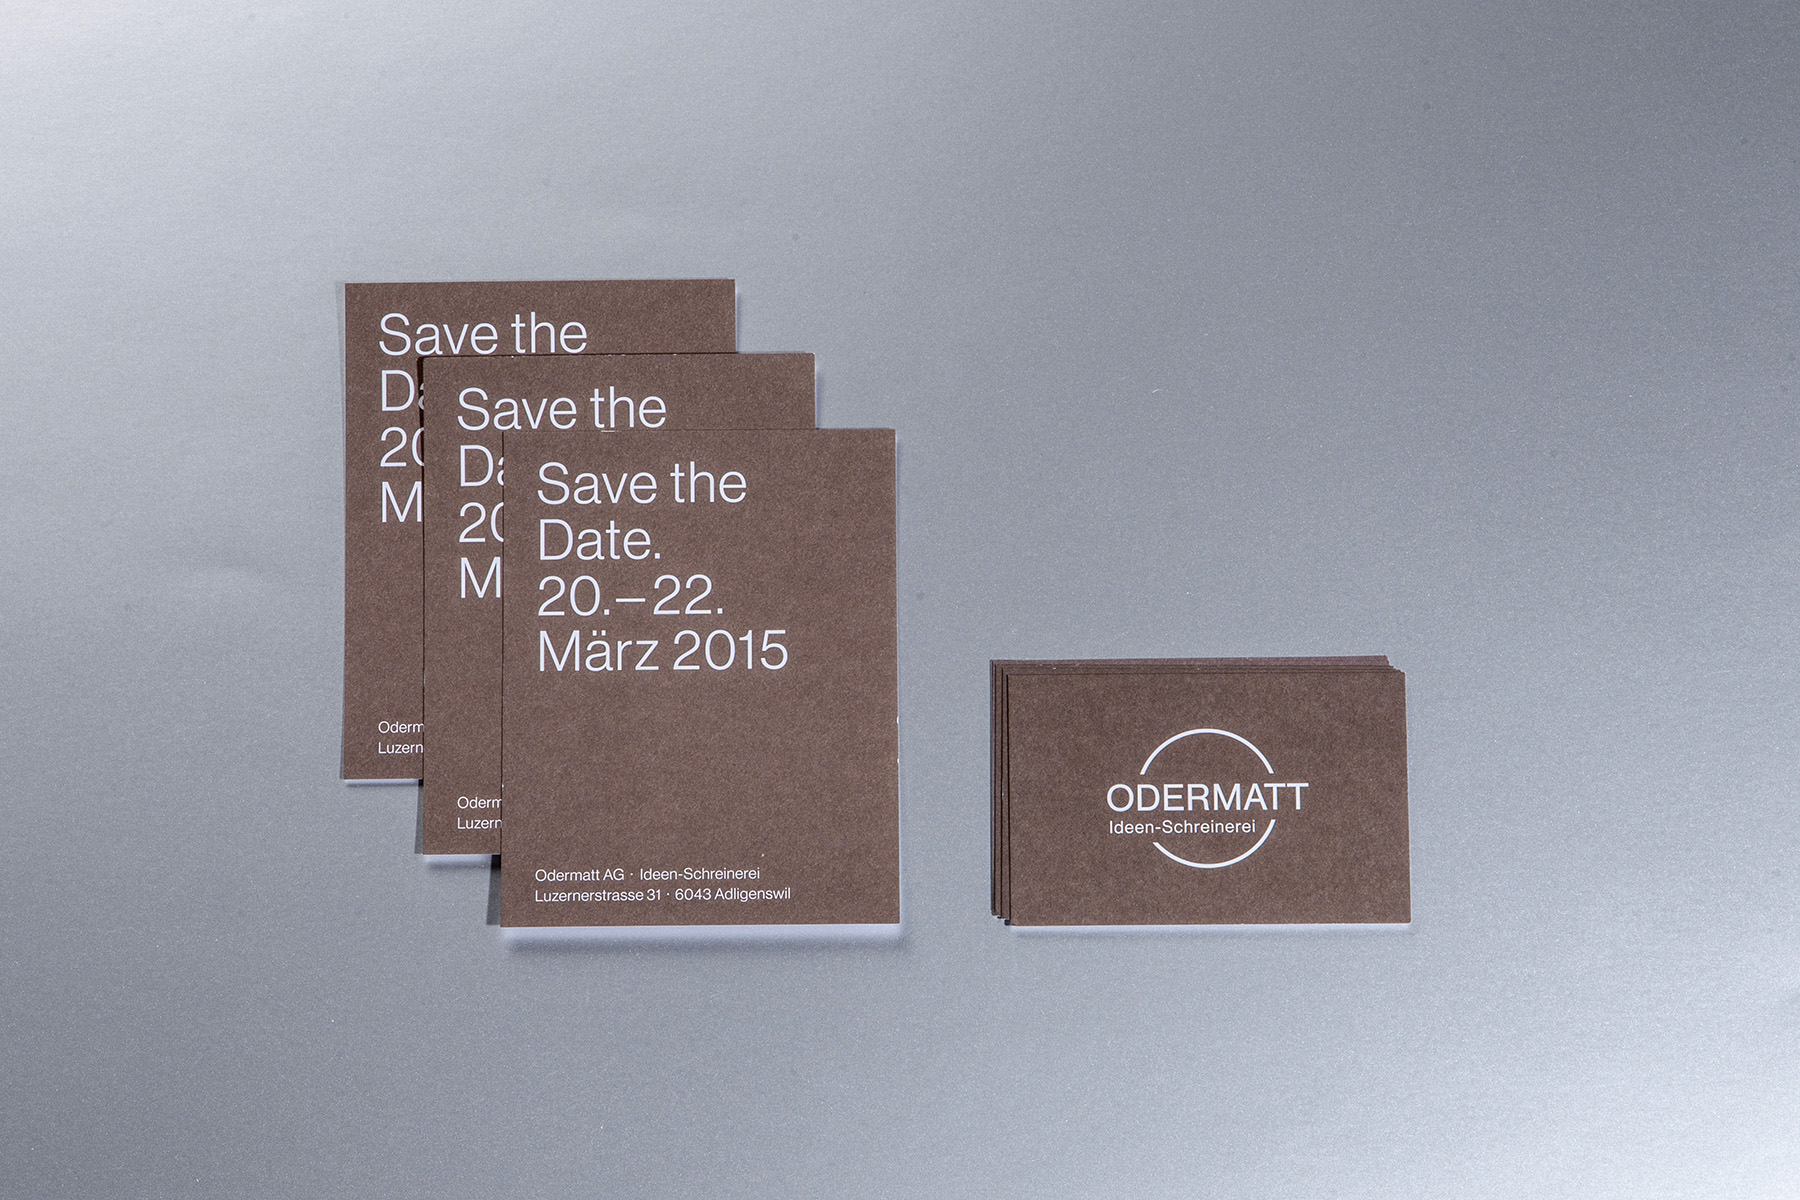 Odermatt Corporate Design